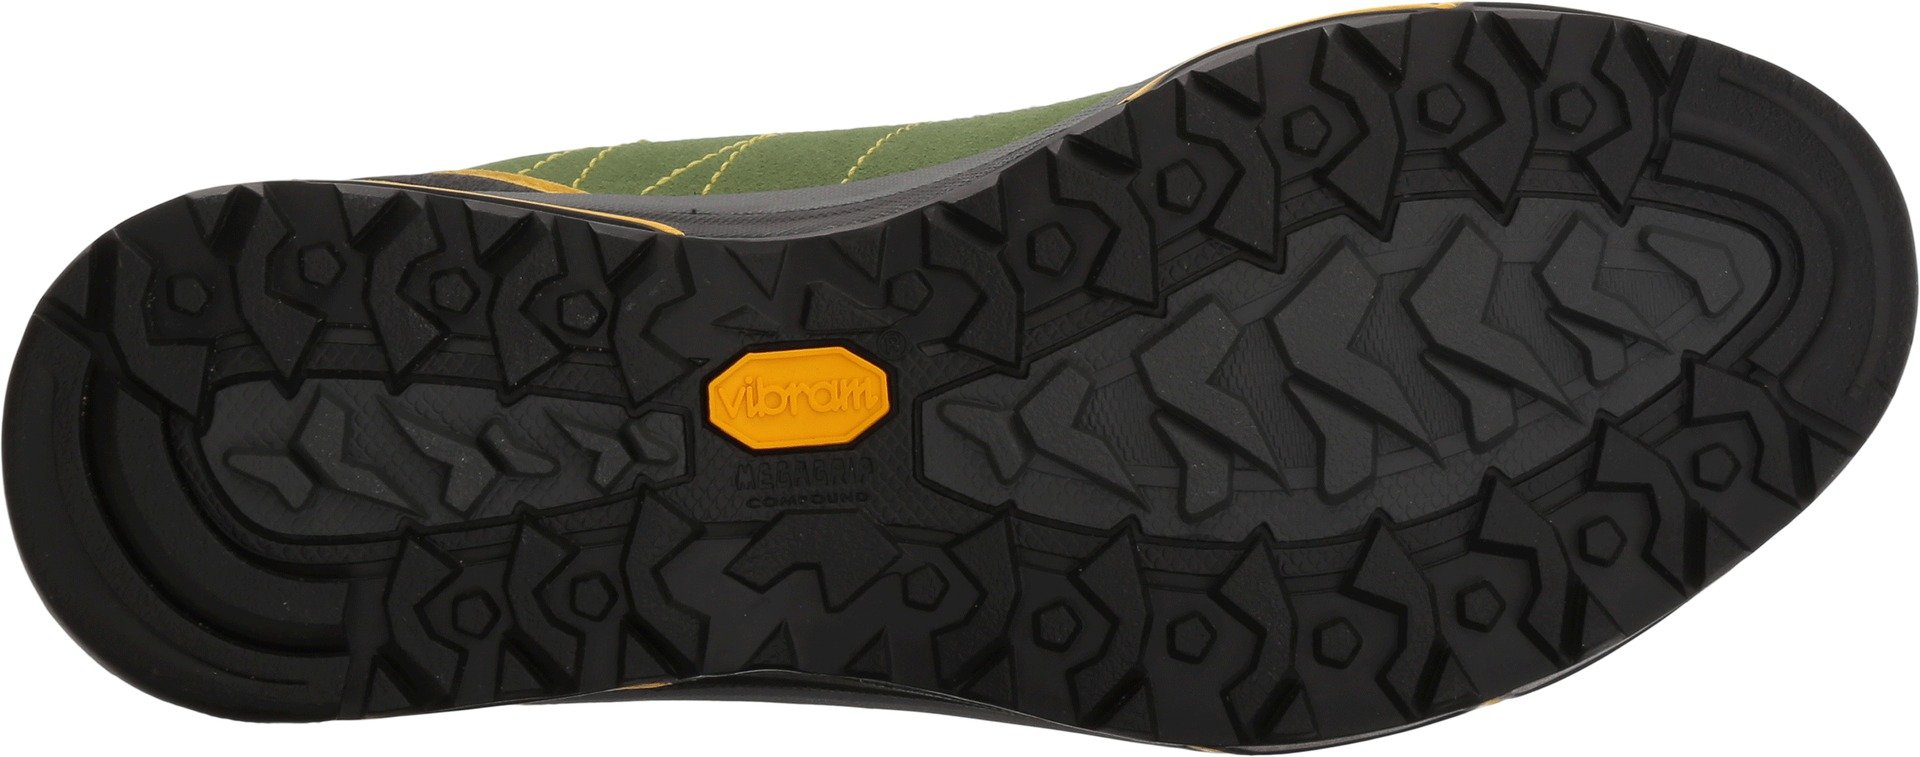 Asolo Women's Nucleon GV English Ivy/Yellow 6 B US by Asolo (Image #3)